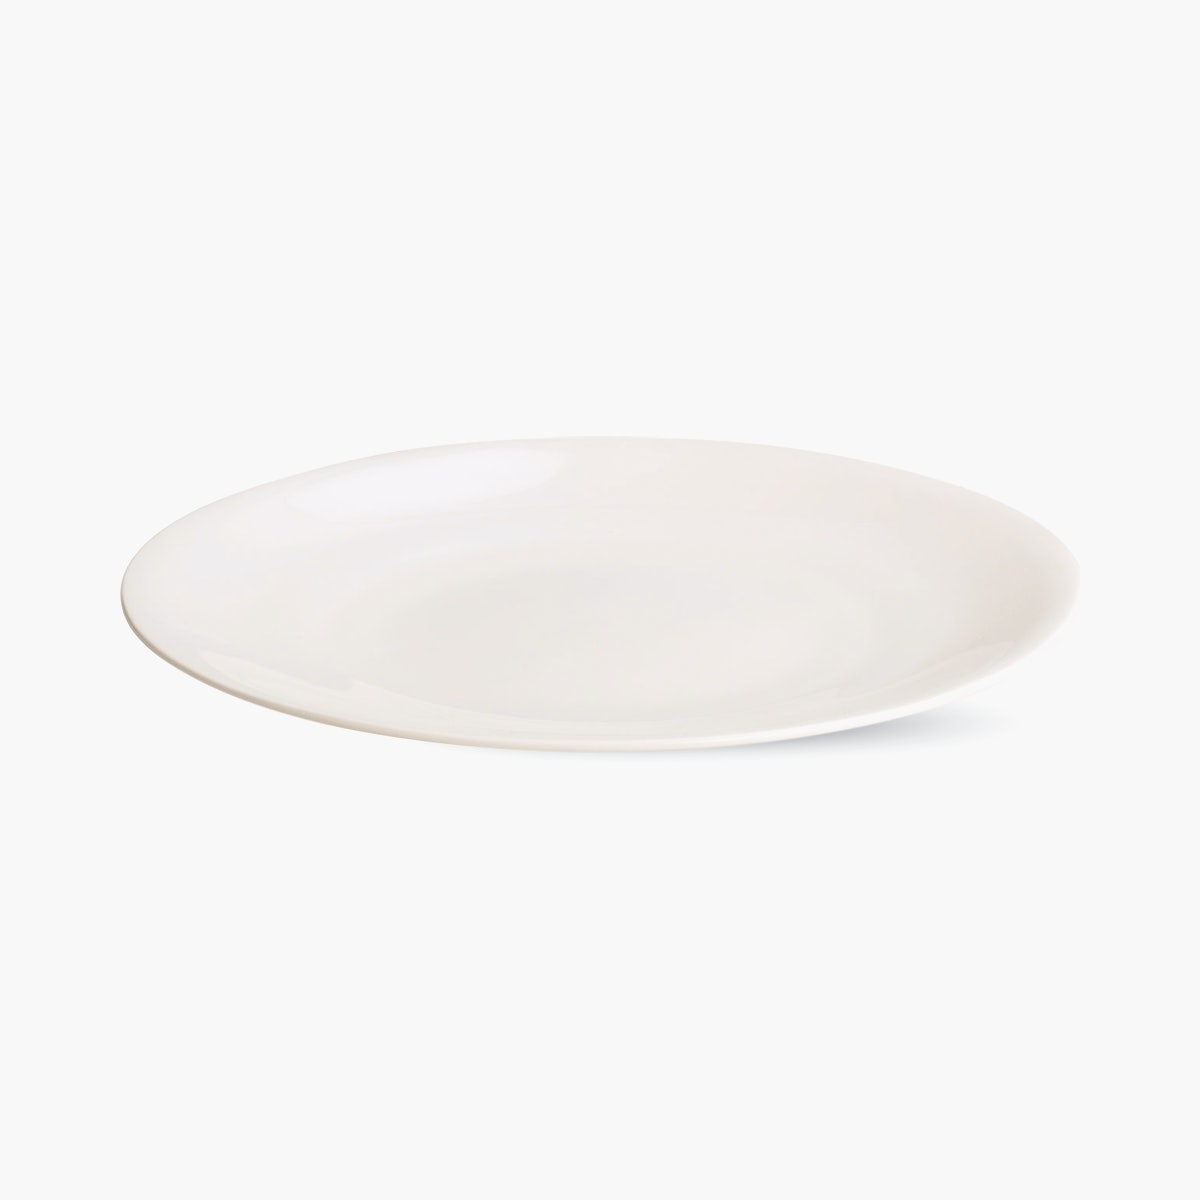 All-Time Dinner Plate, Set of 4